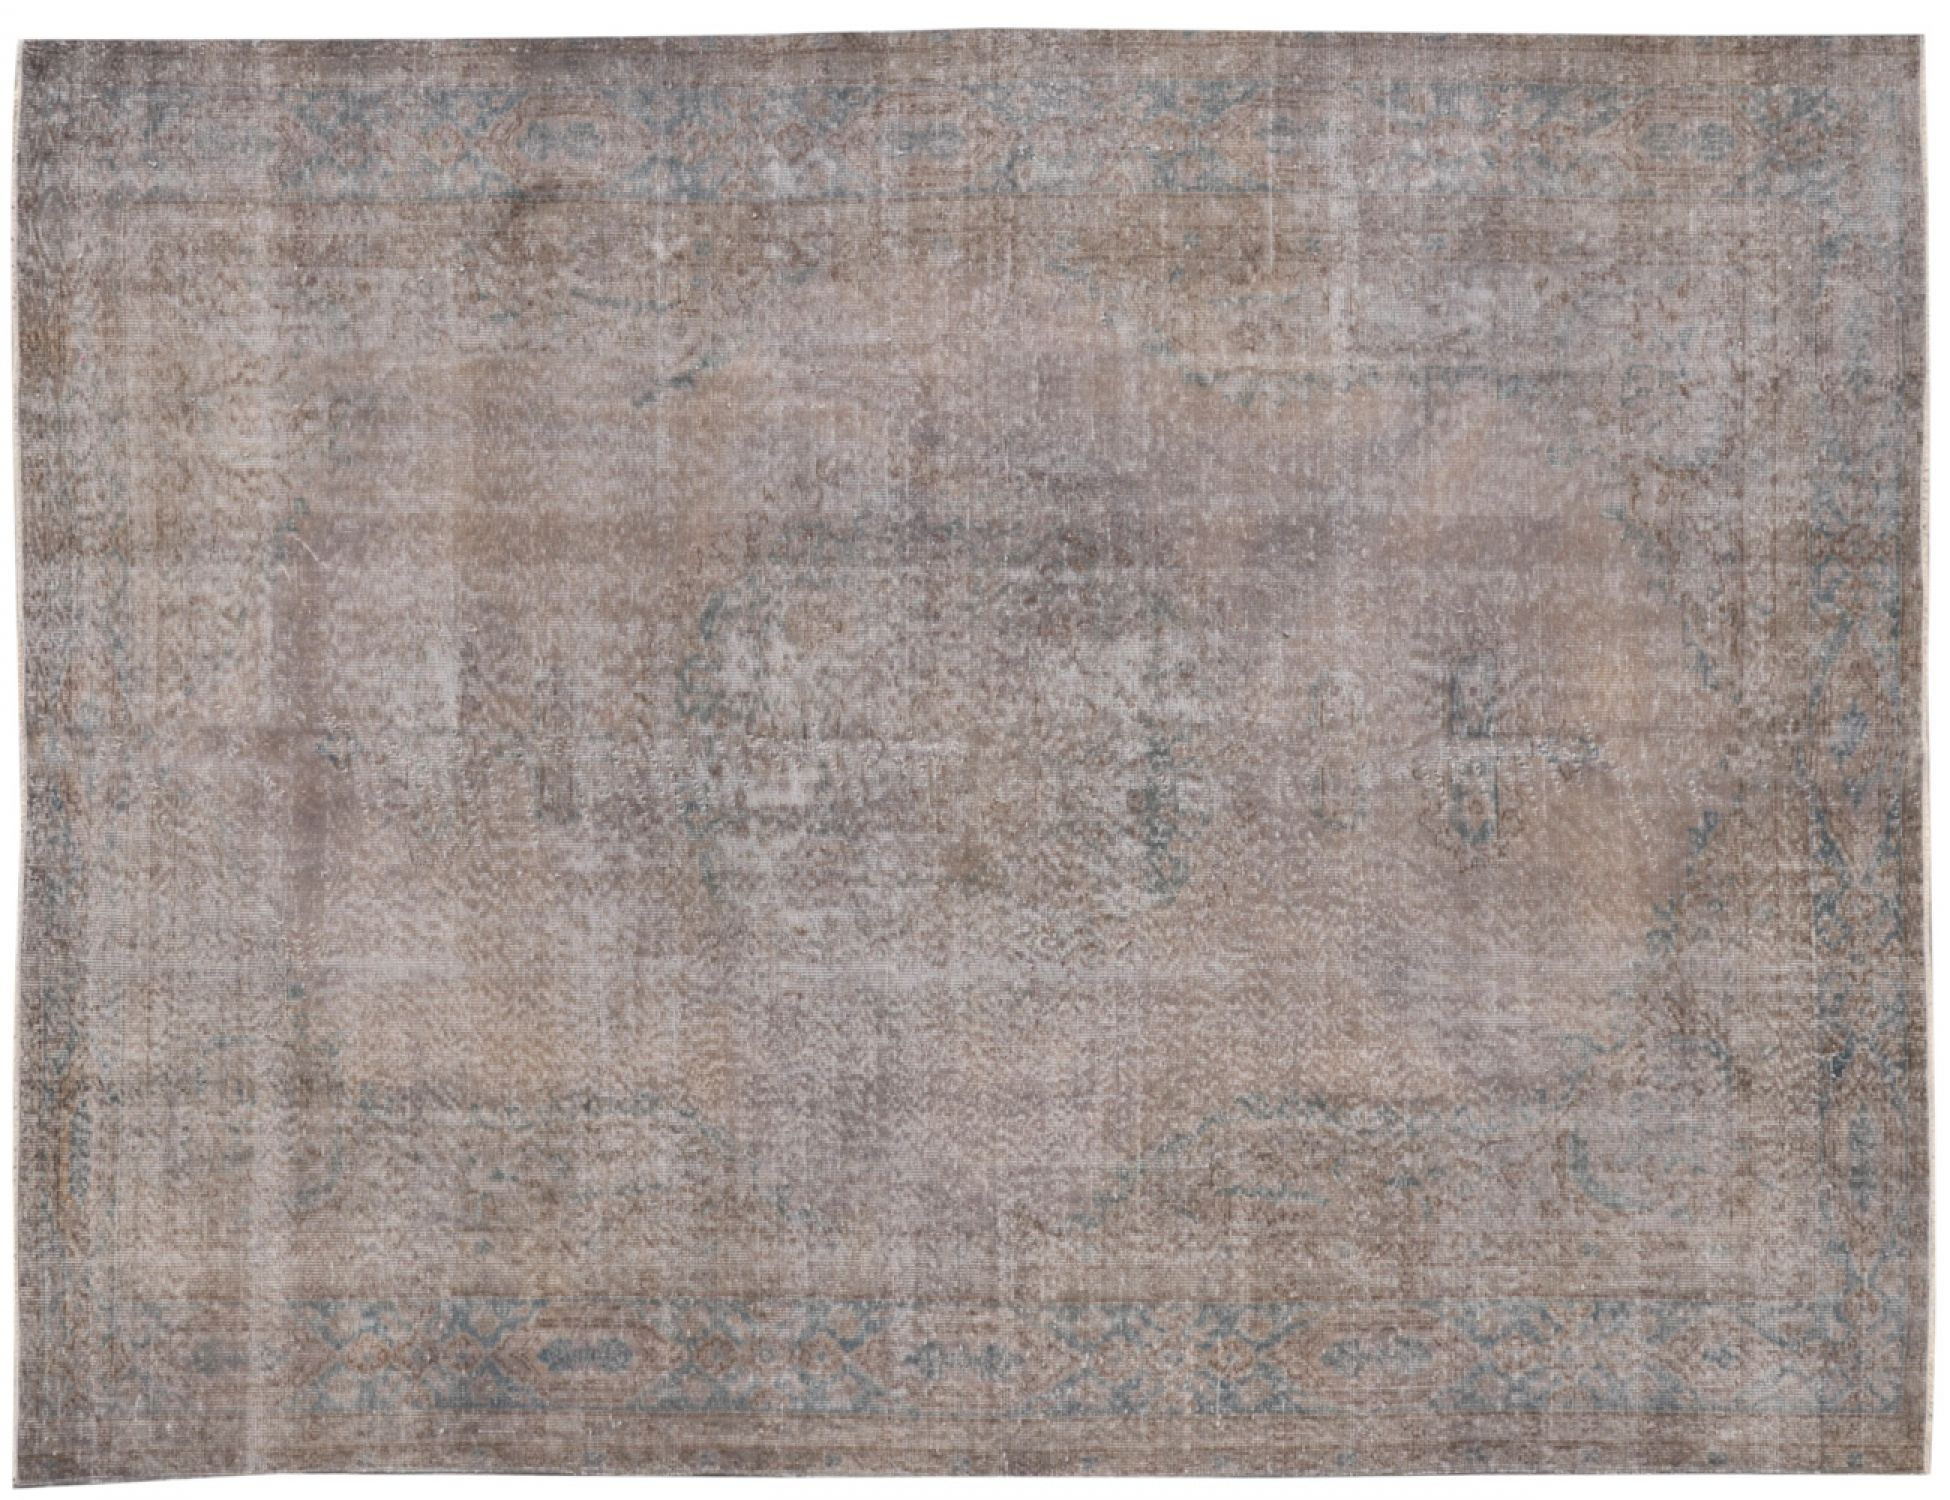 Vintage Carpet  grey <br/>301 x 207 cm